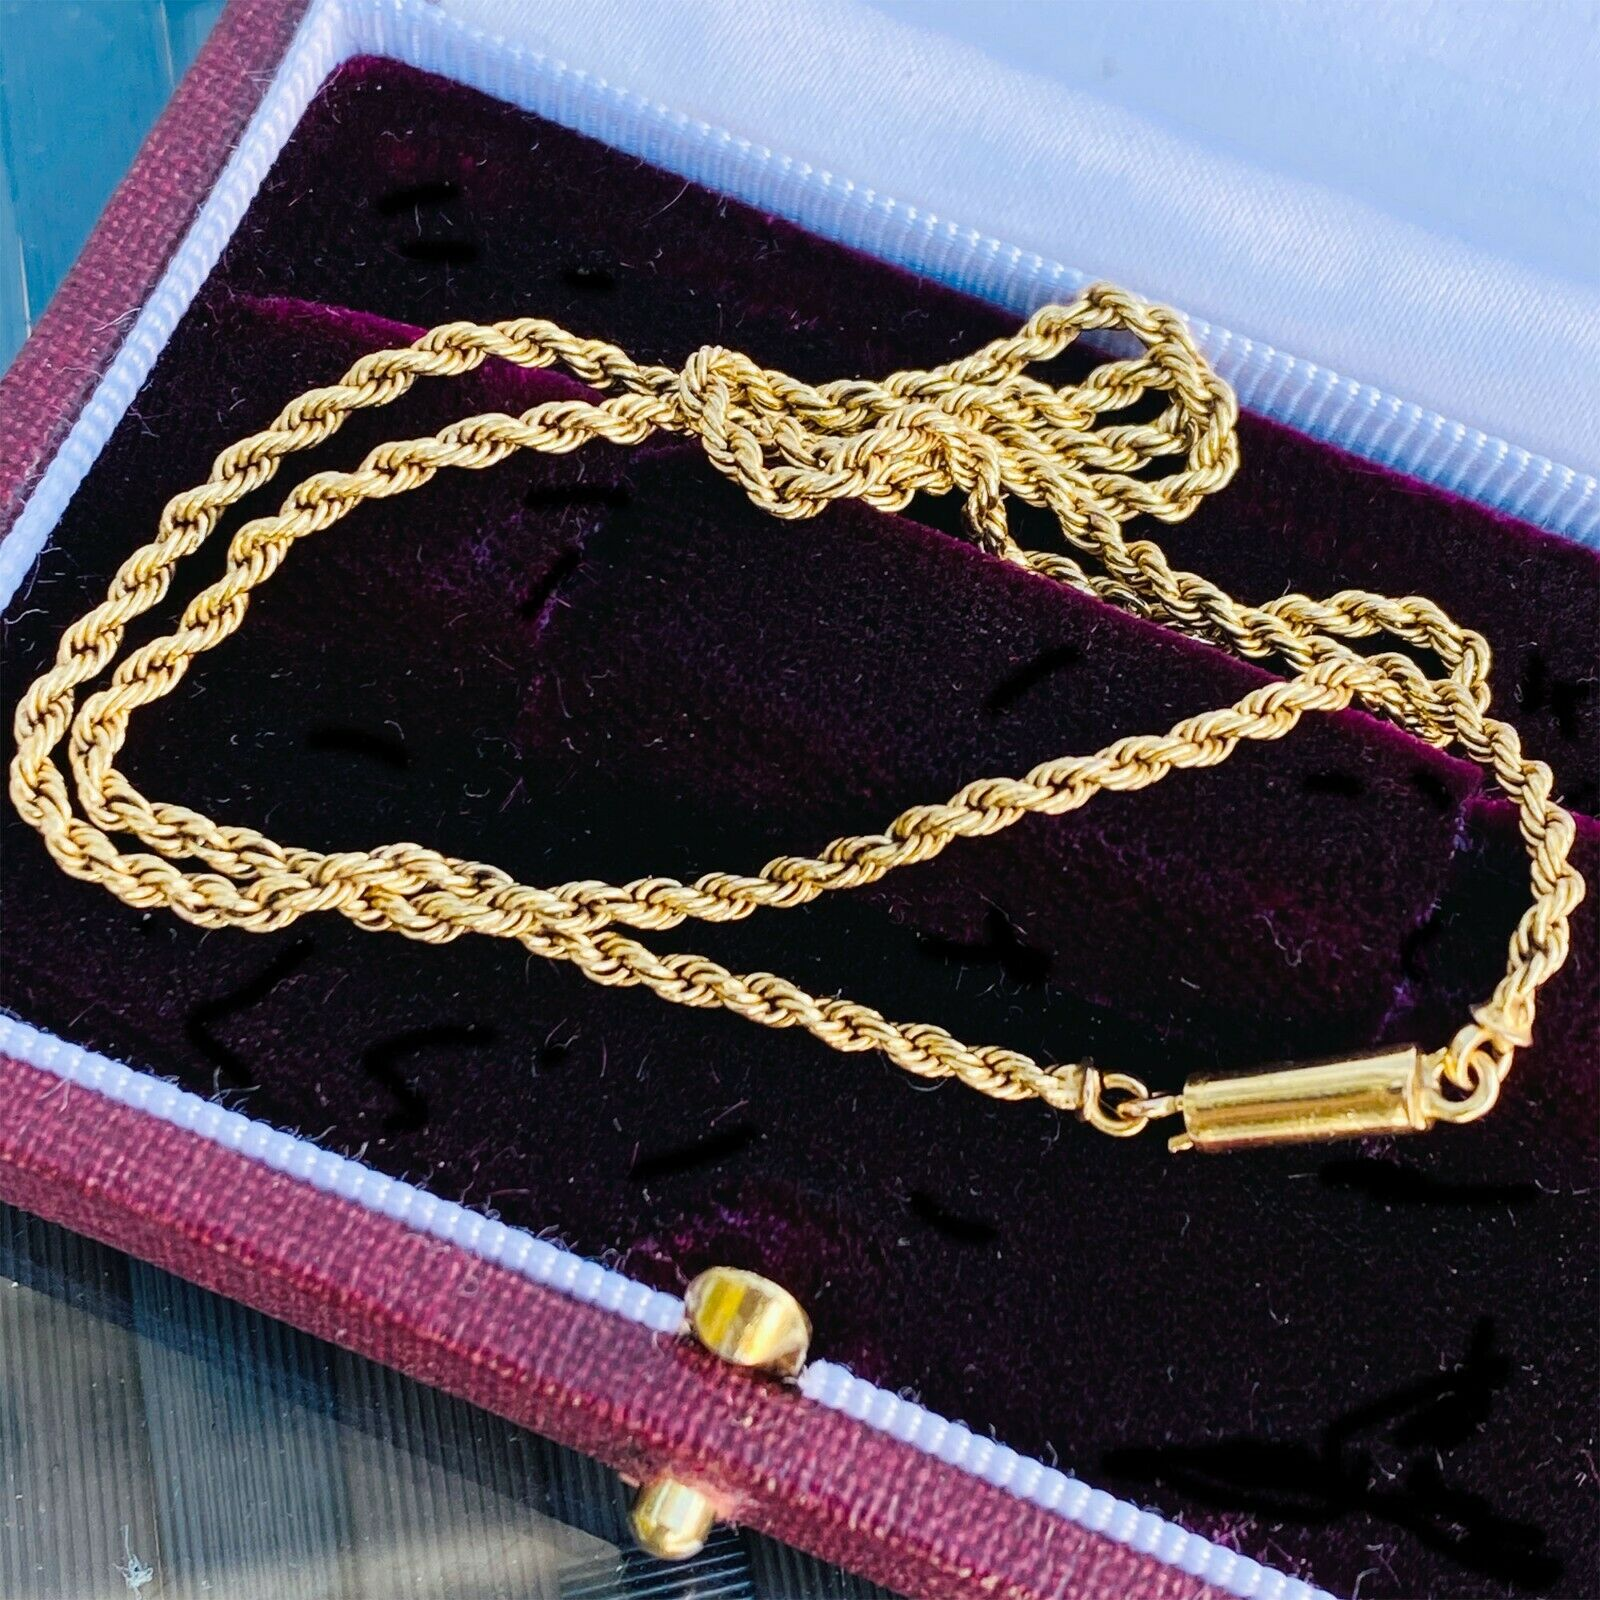 """Edwardian 15ct/15k, 625 Gold rope link chain with barrel clasp, length 15""""/38cm"""